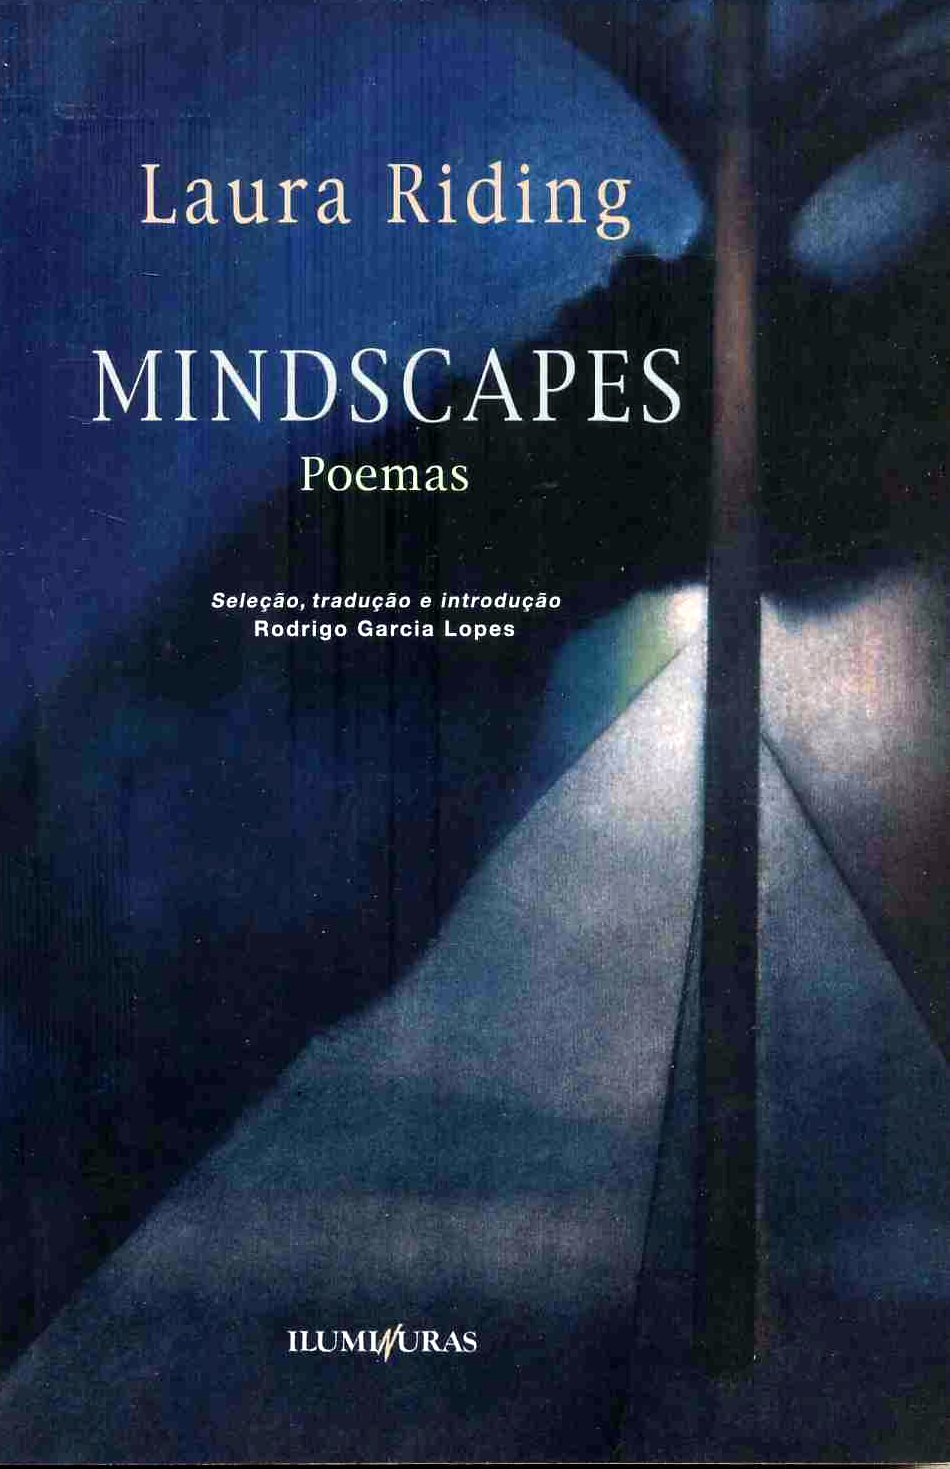 Mindscapes: Poemas de Laura Riding